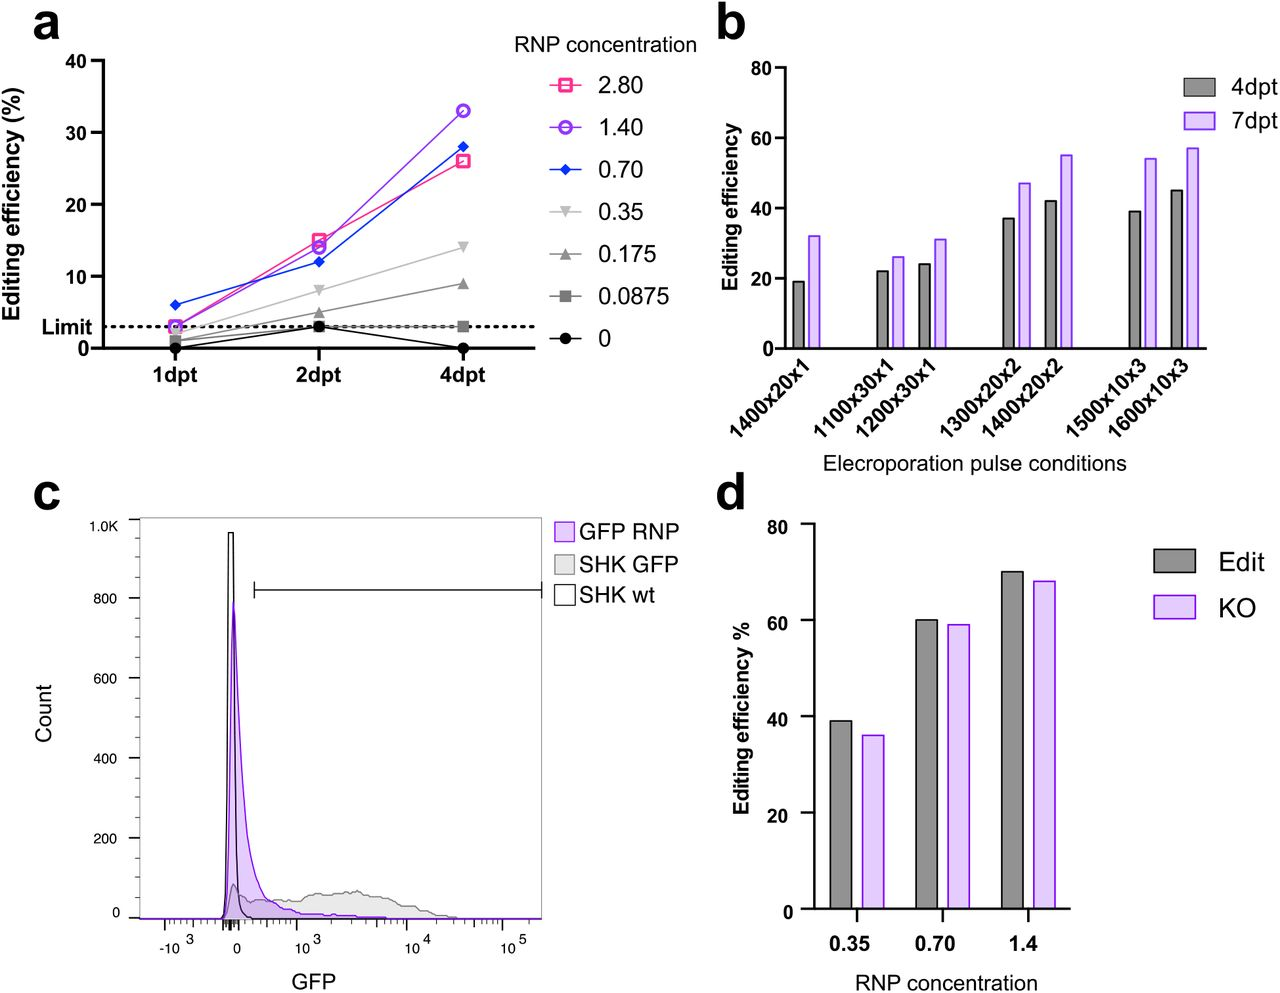 SHK-1 cells were electroporated with 1.4 μM Cas9:gRNA RNP and transferred to 2 separate 96-well plates. (A) After 48h, cell survival (plate1) was calculated using CellTiter Glo 2.0. (B) genomic DNA (plate 2) was extracted at 7 dpt, and the target sequence amplified by PCR and editing efficiency estimated using Sanger sequencing. (C) Using 1.4 μM RNP, the editing efficiency after 7 and 14 ddpt was estimated for different electroporation settings. (D) All the sequencing data, obtained from ICE analysis of Sanger sequencing of the intergenic target region from optimisation experiments (n=55) were pooled and plotted according to edit pattern.